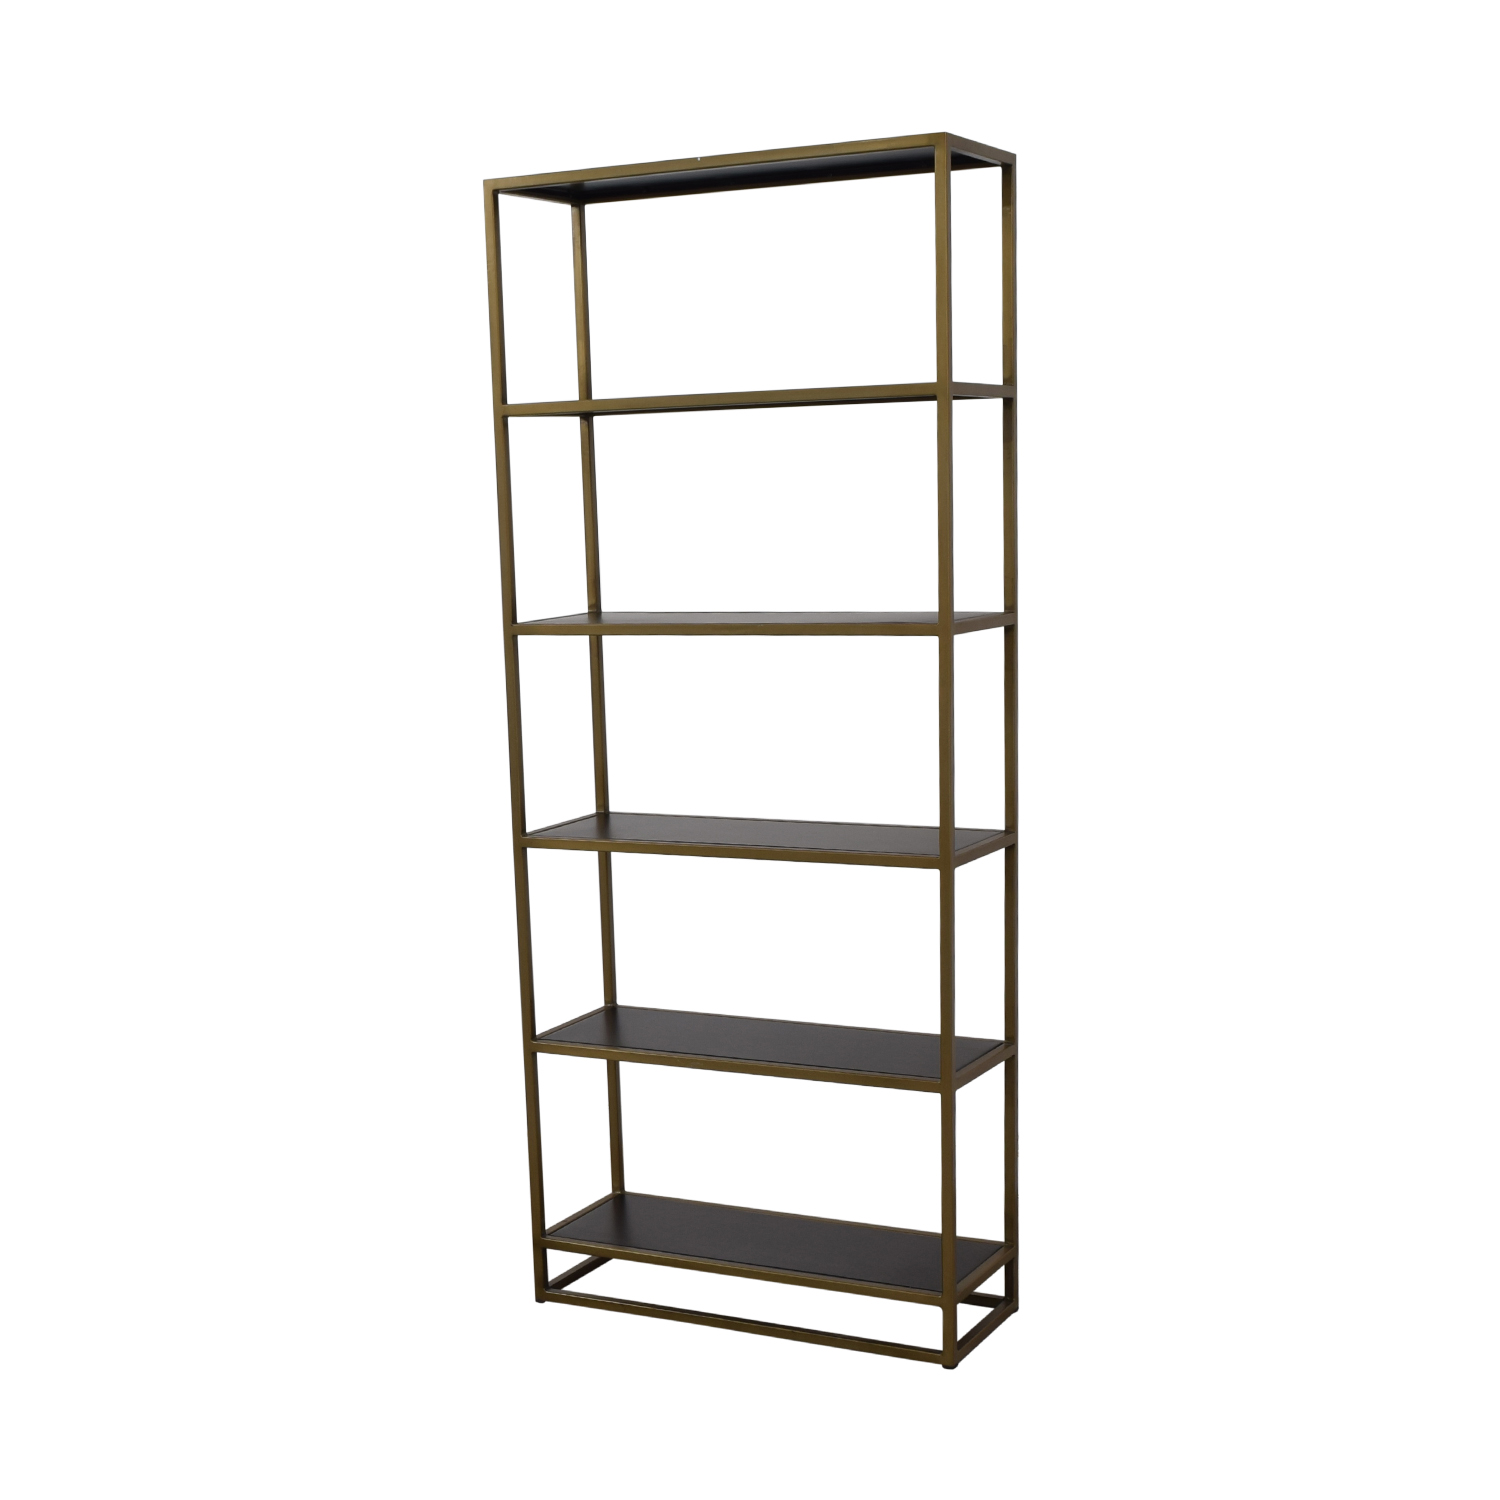 shop Crate & Barrel Brass Bookshelf Crate & Barrel